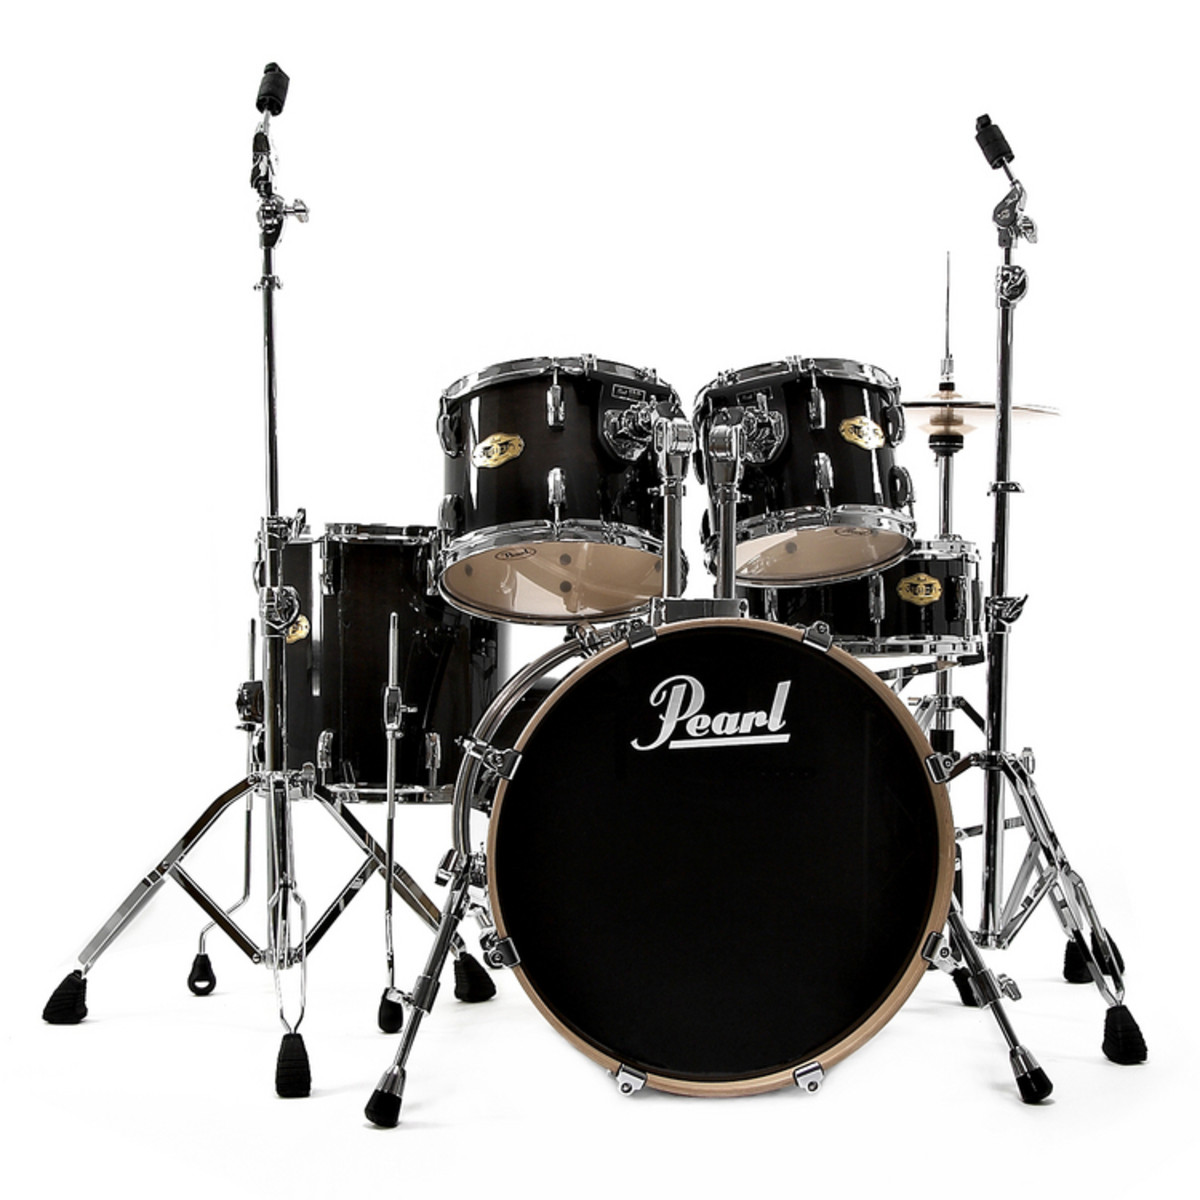 discontinued pearl vision vmx drum shell kit black fade at gear4music. Black Bedroom Furniture Sets. Home Design Ideas